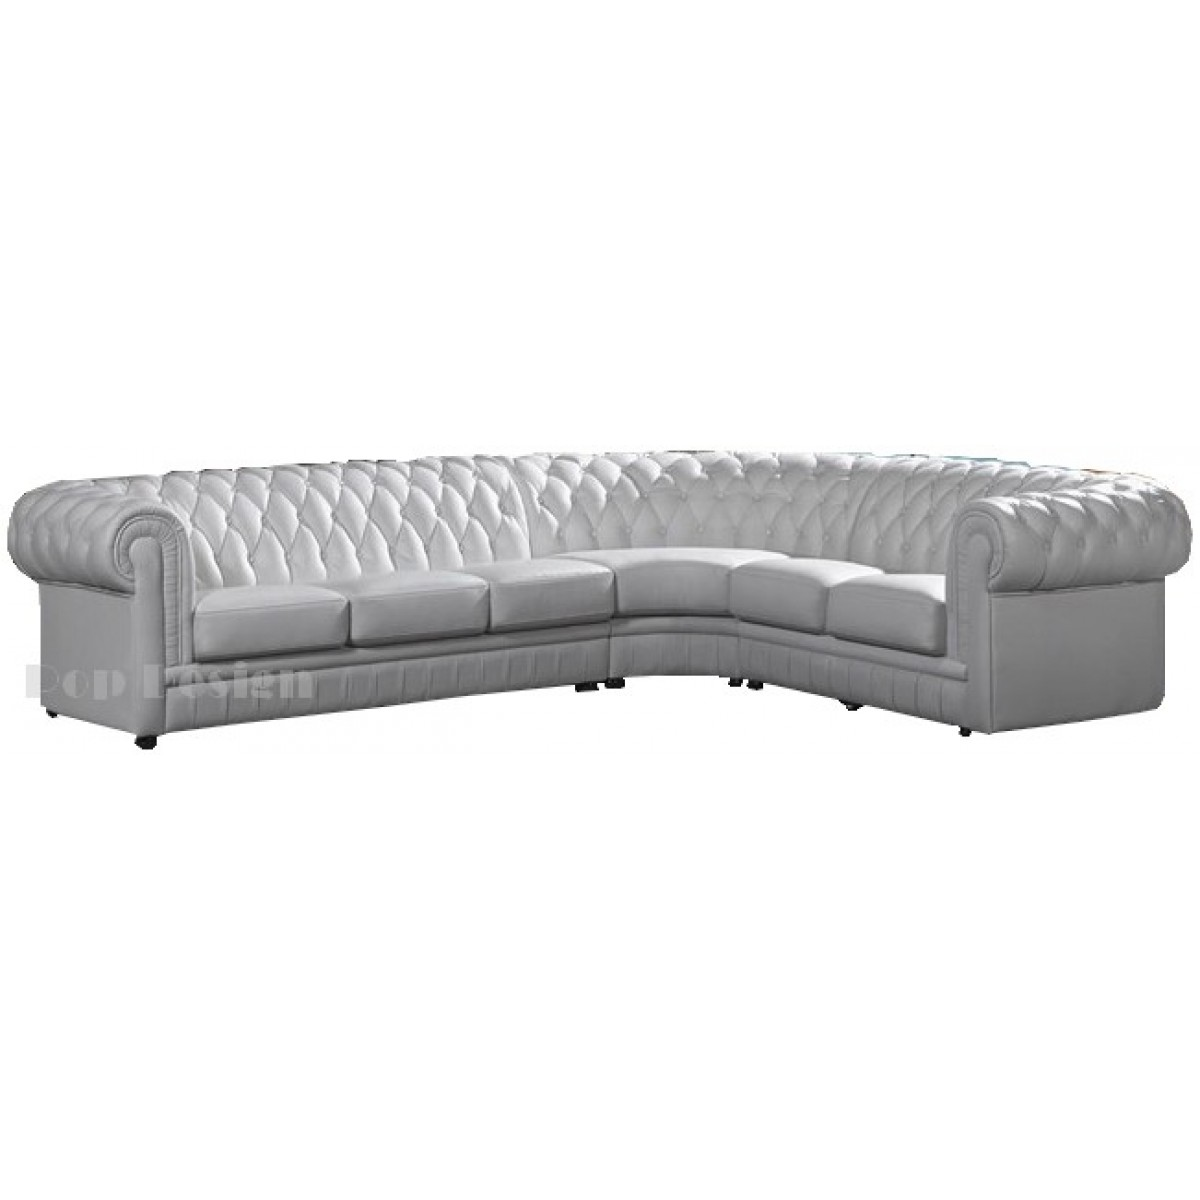 Grand canap d 39 angle en cuir pleine fleur chesterfield for Canape d angle chesterfield